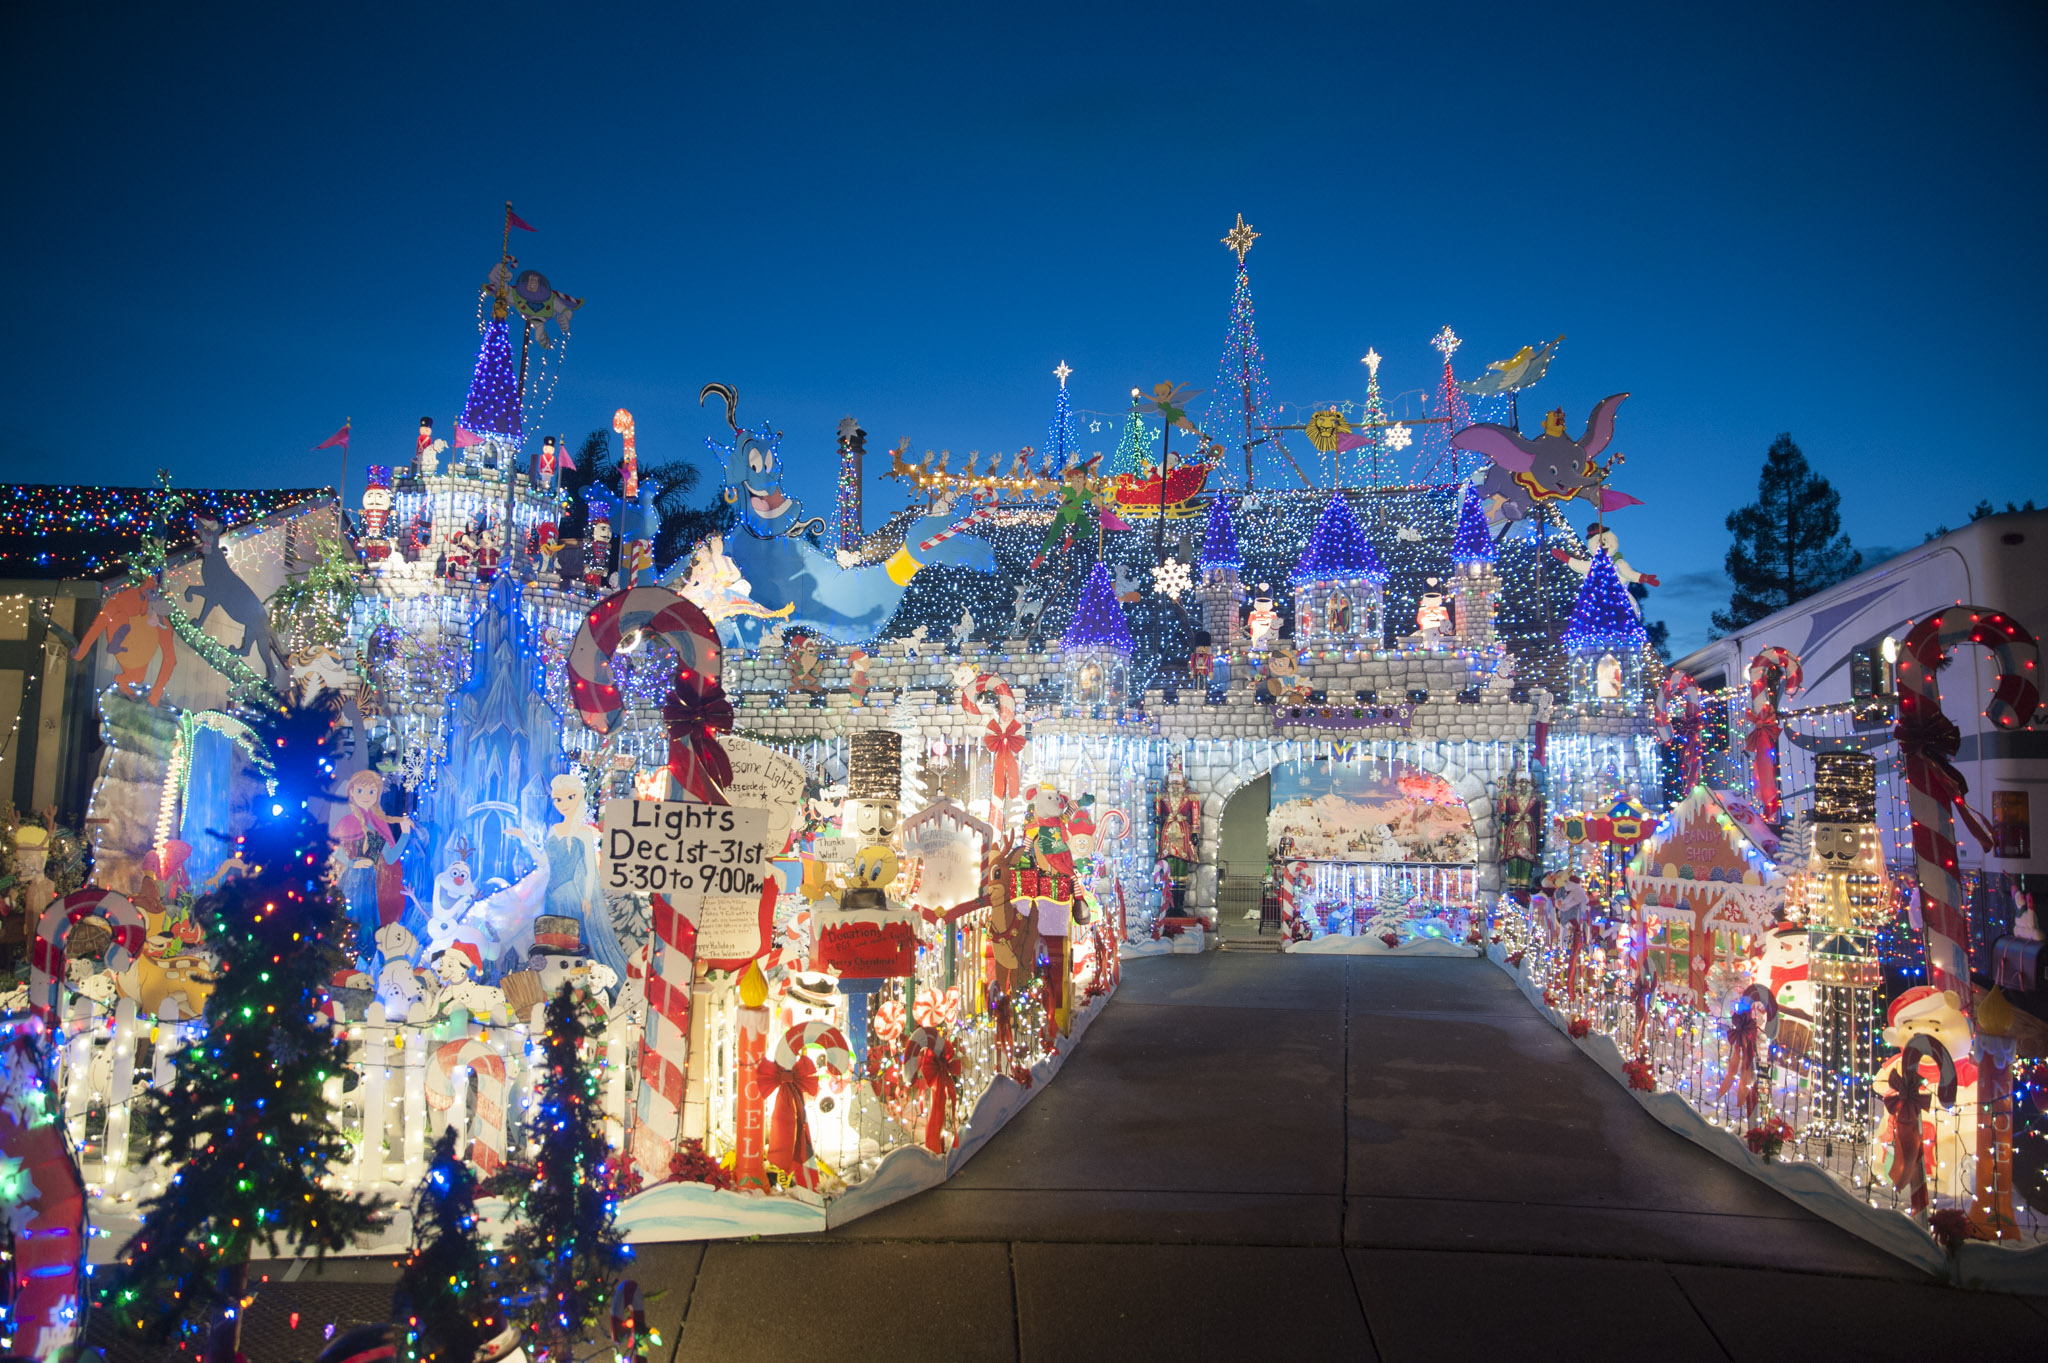 San Jose Christmas Lights.Local Annual Christmas Spectacle Ends 22 Year Run Sonoma